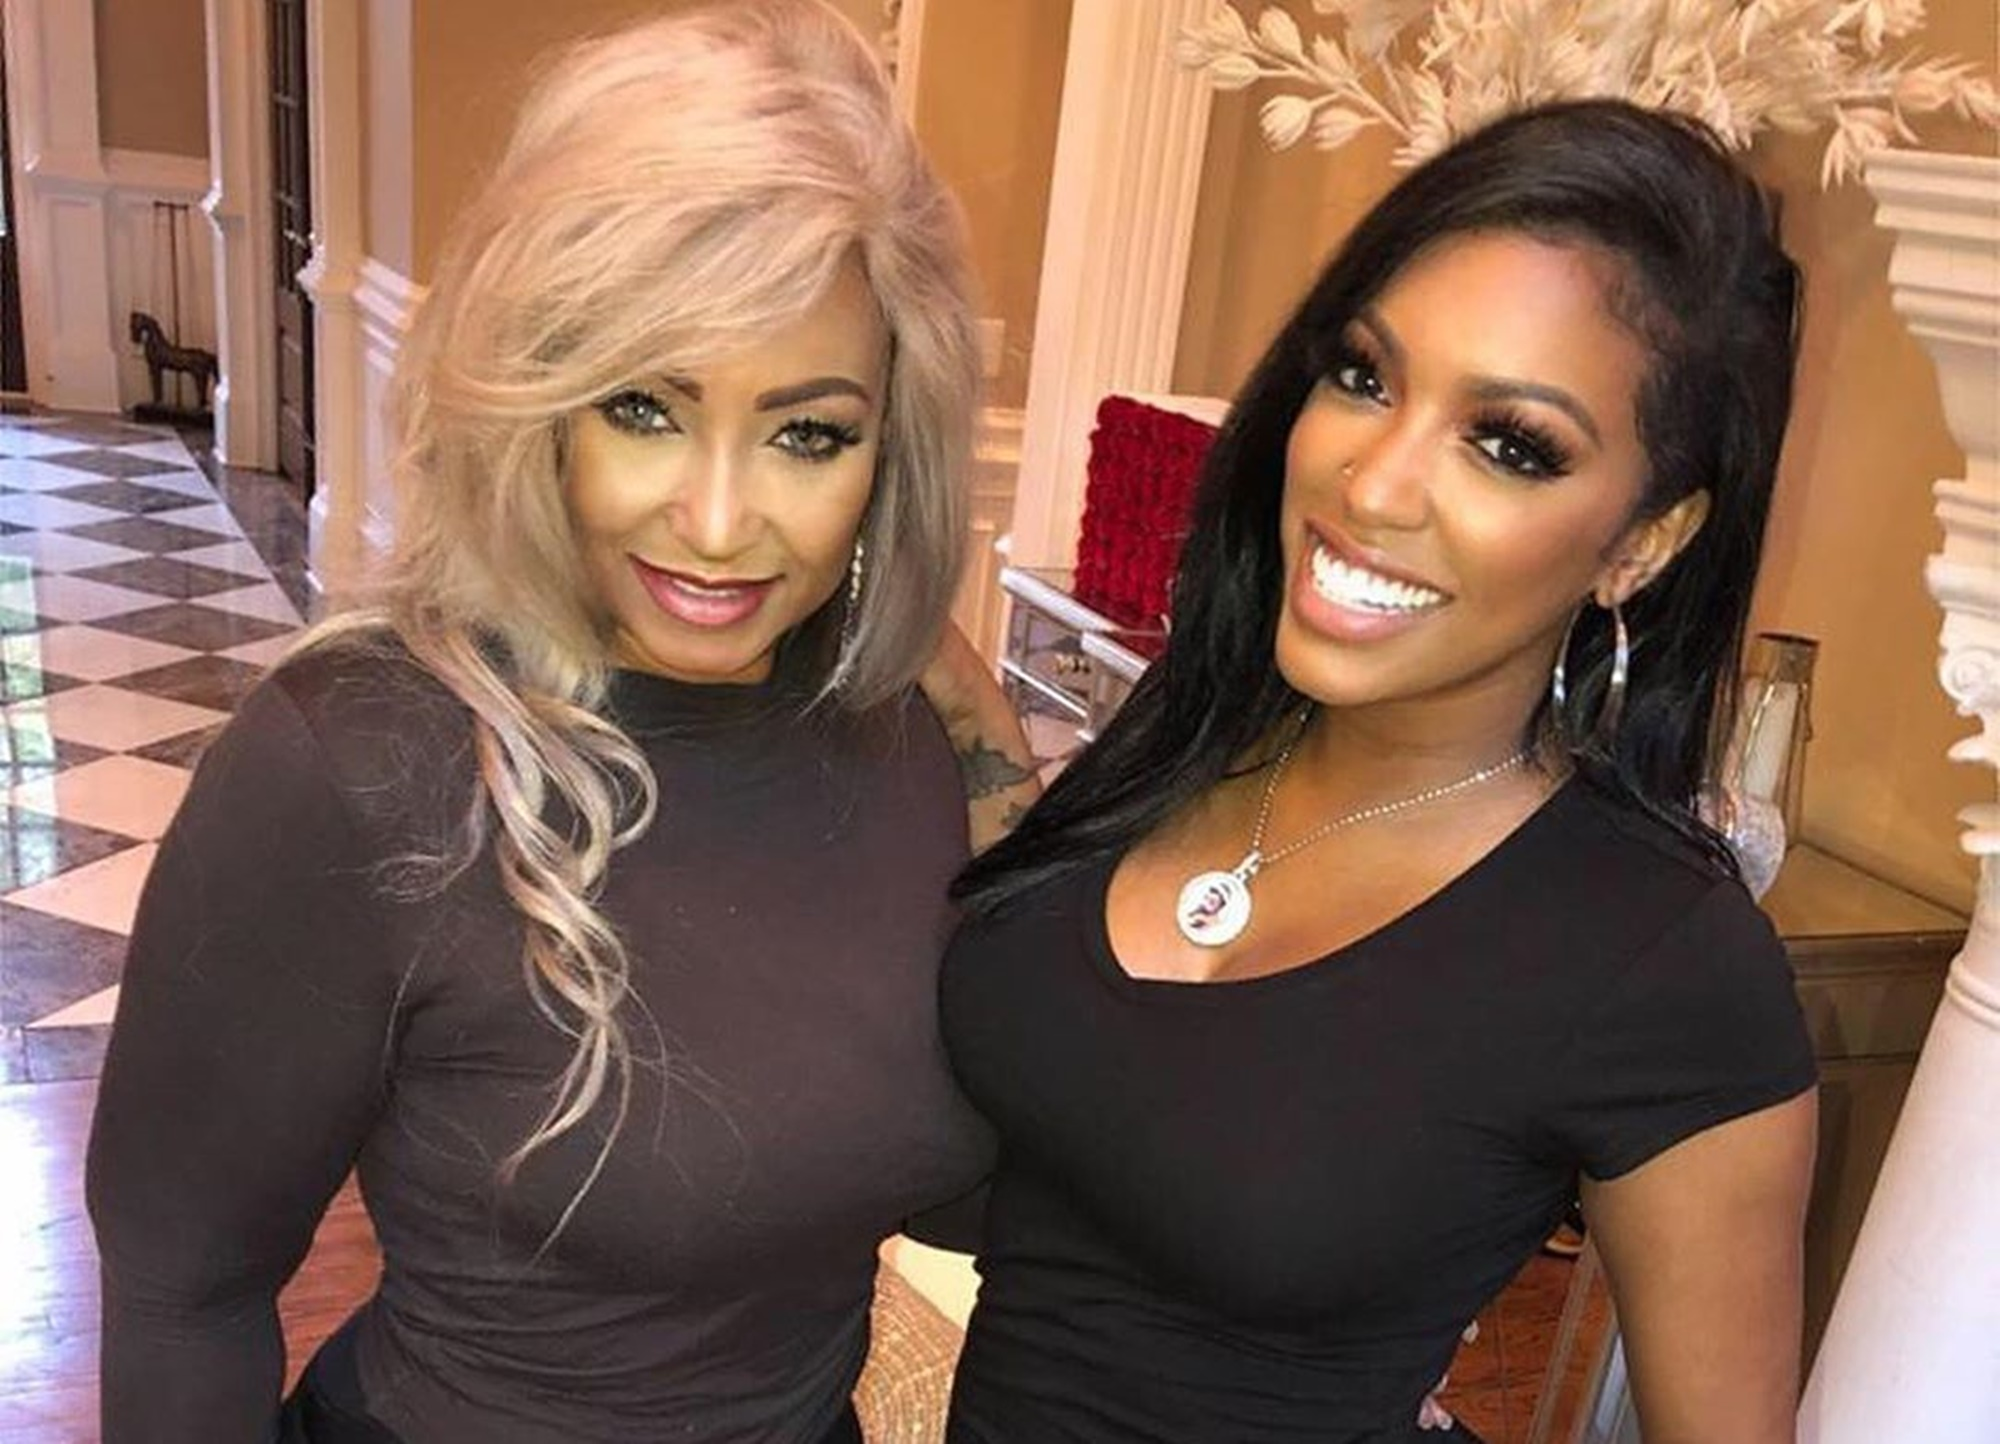 porsha-williams-daughter-diane-shows-off-her-amazing-body-after-liposuction-in-new-pictures-fans-are-still-asking-about-dennis-mckinley